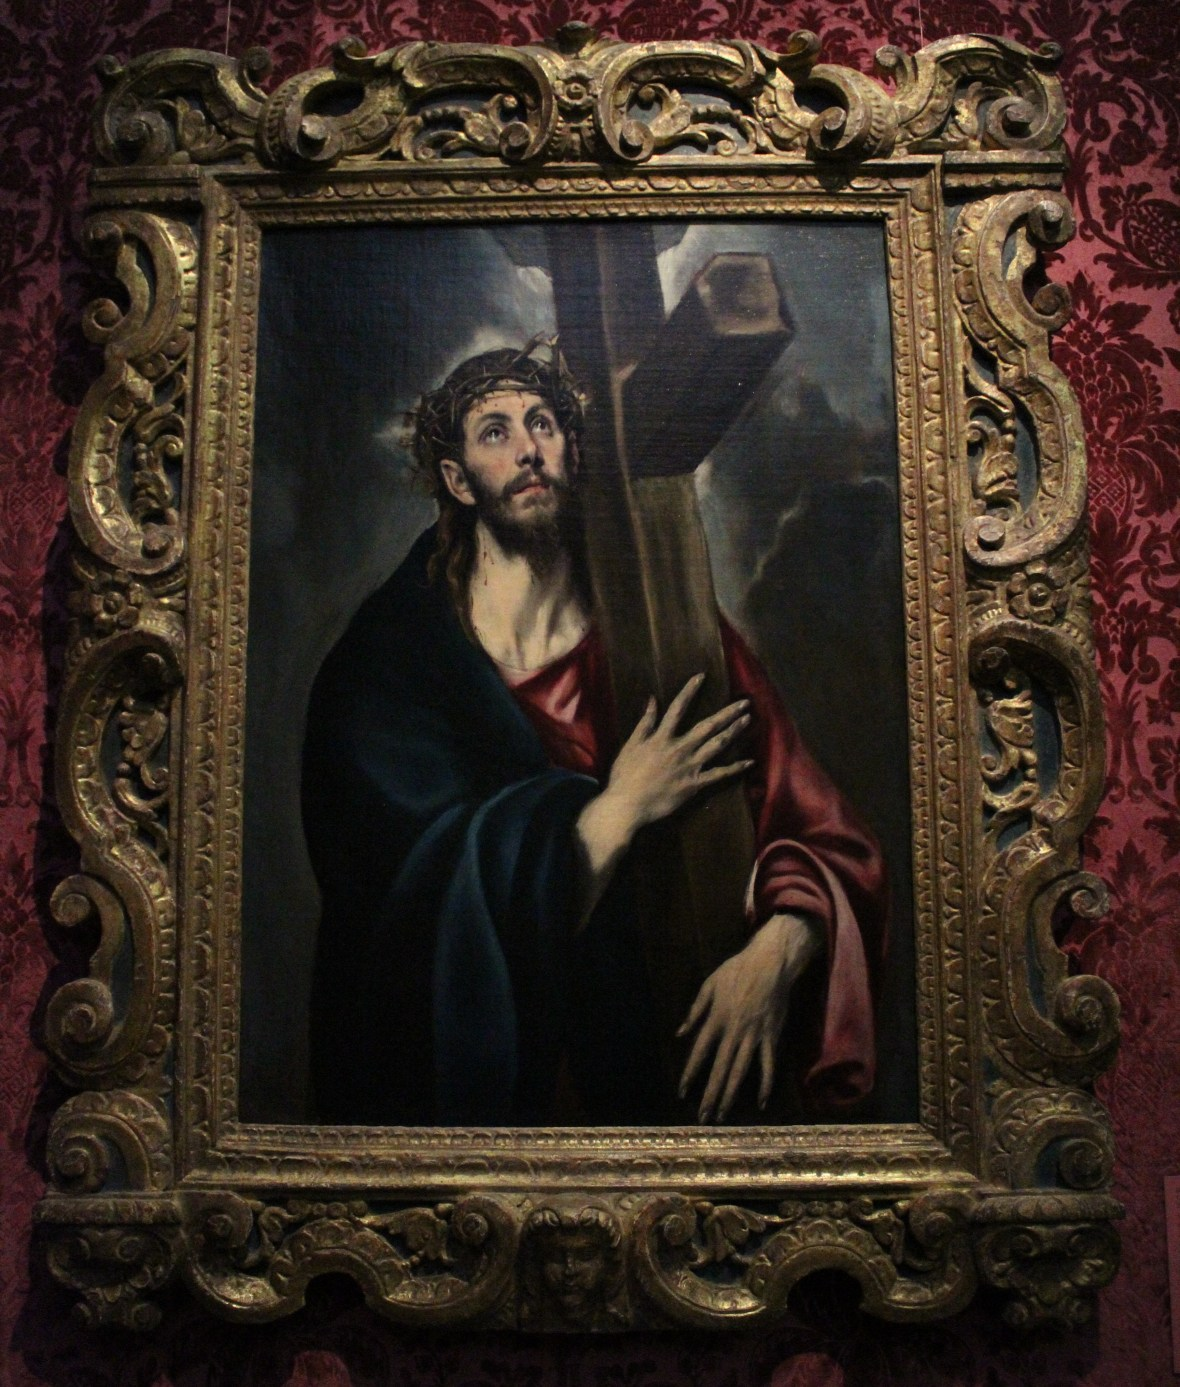 El Greco, Christ Carrying the Cross, 1577-1587